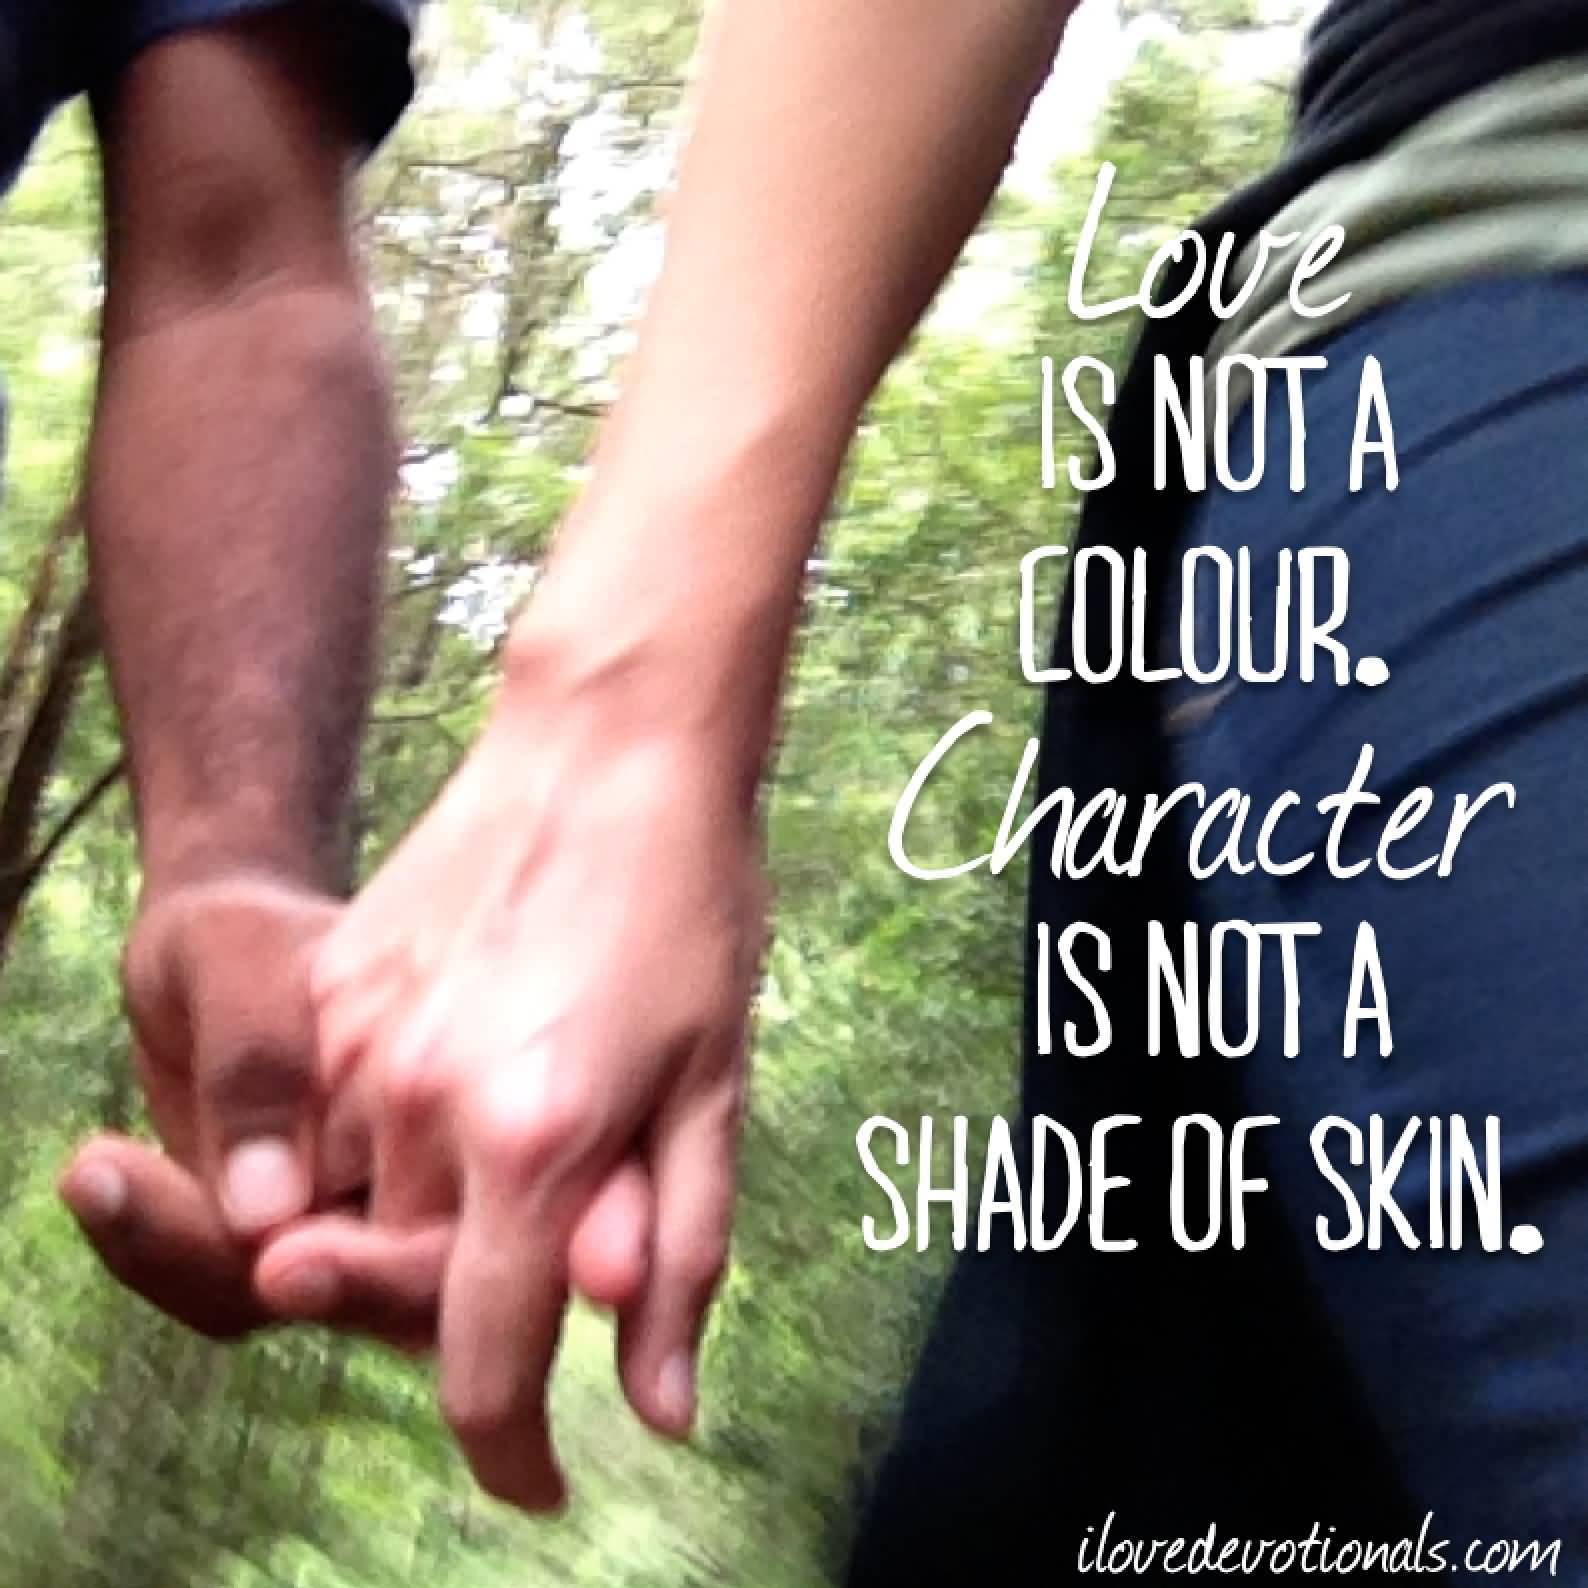 Love is not a colour character is not a shade of skin